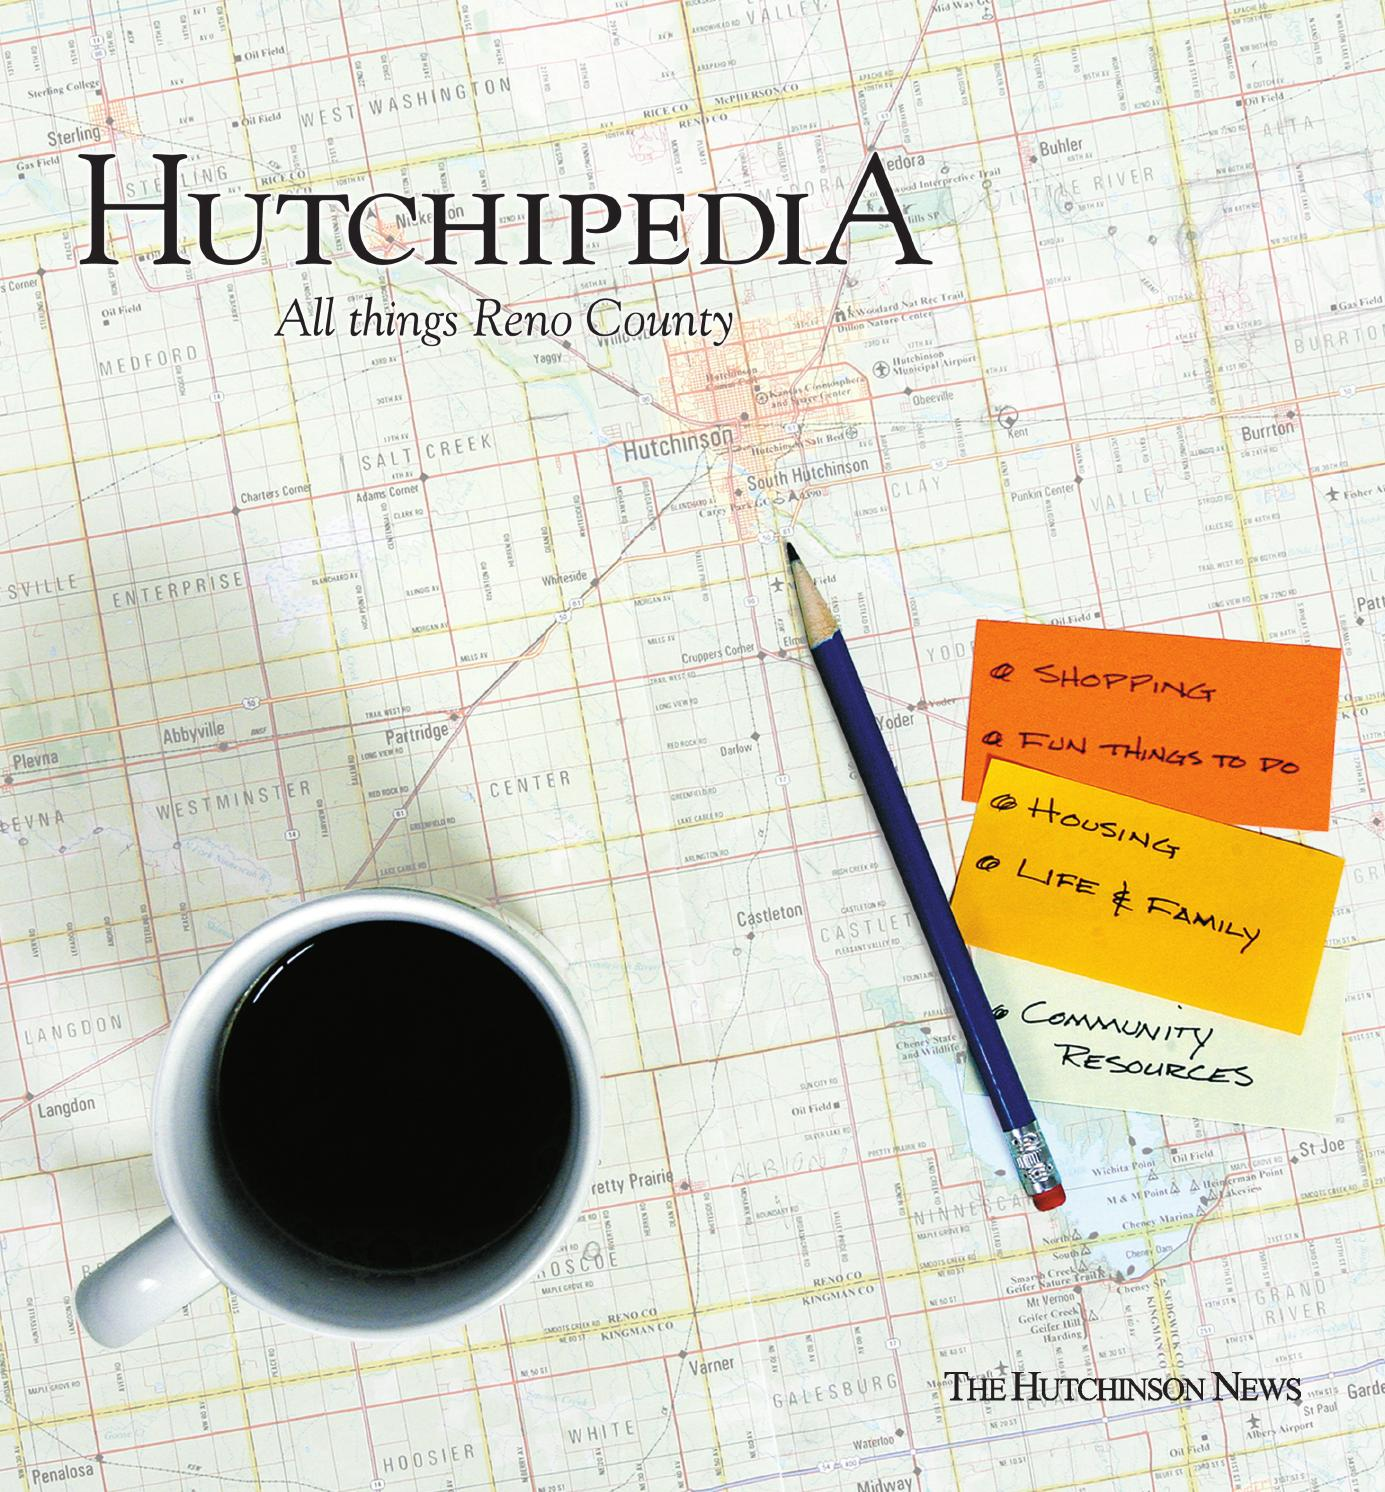 Hutchipedia 2010 By The Hutchinson News